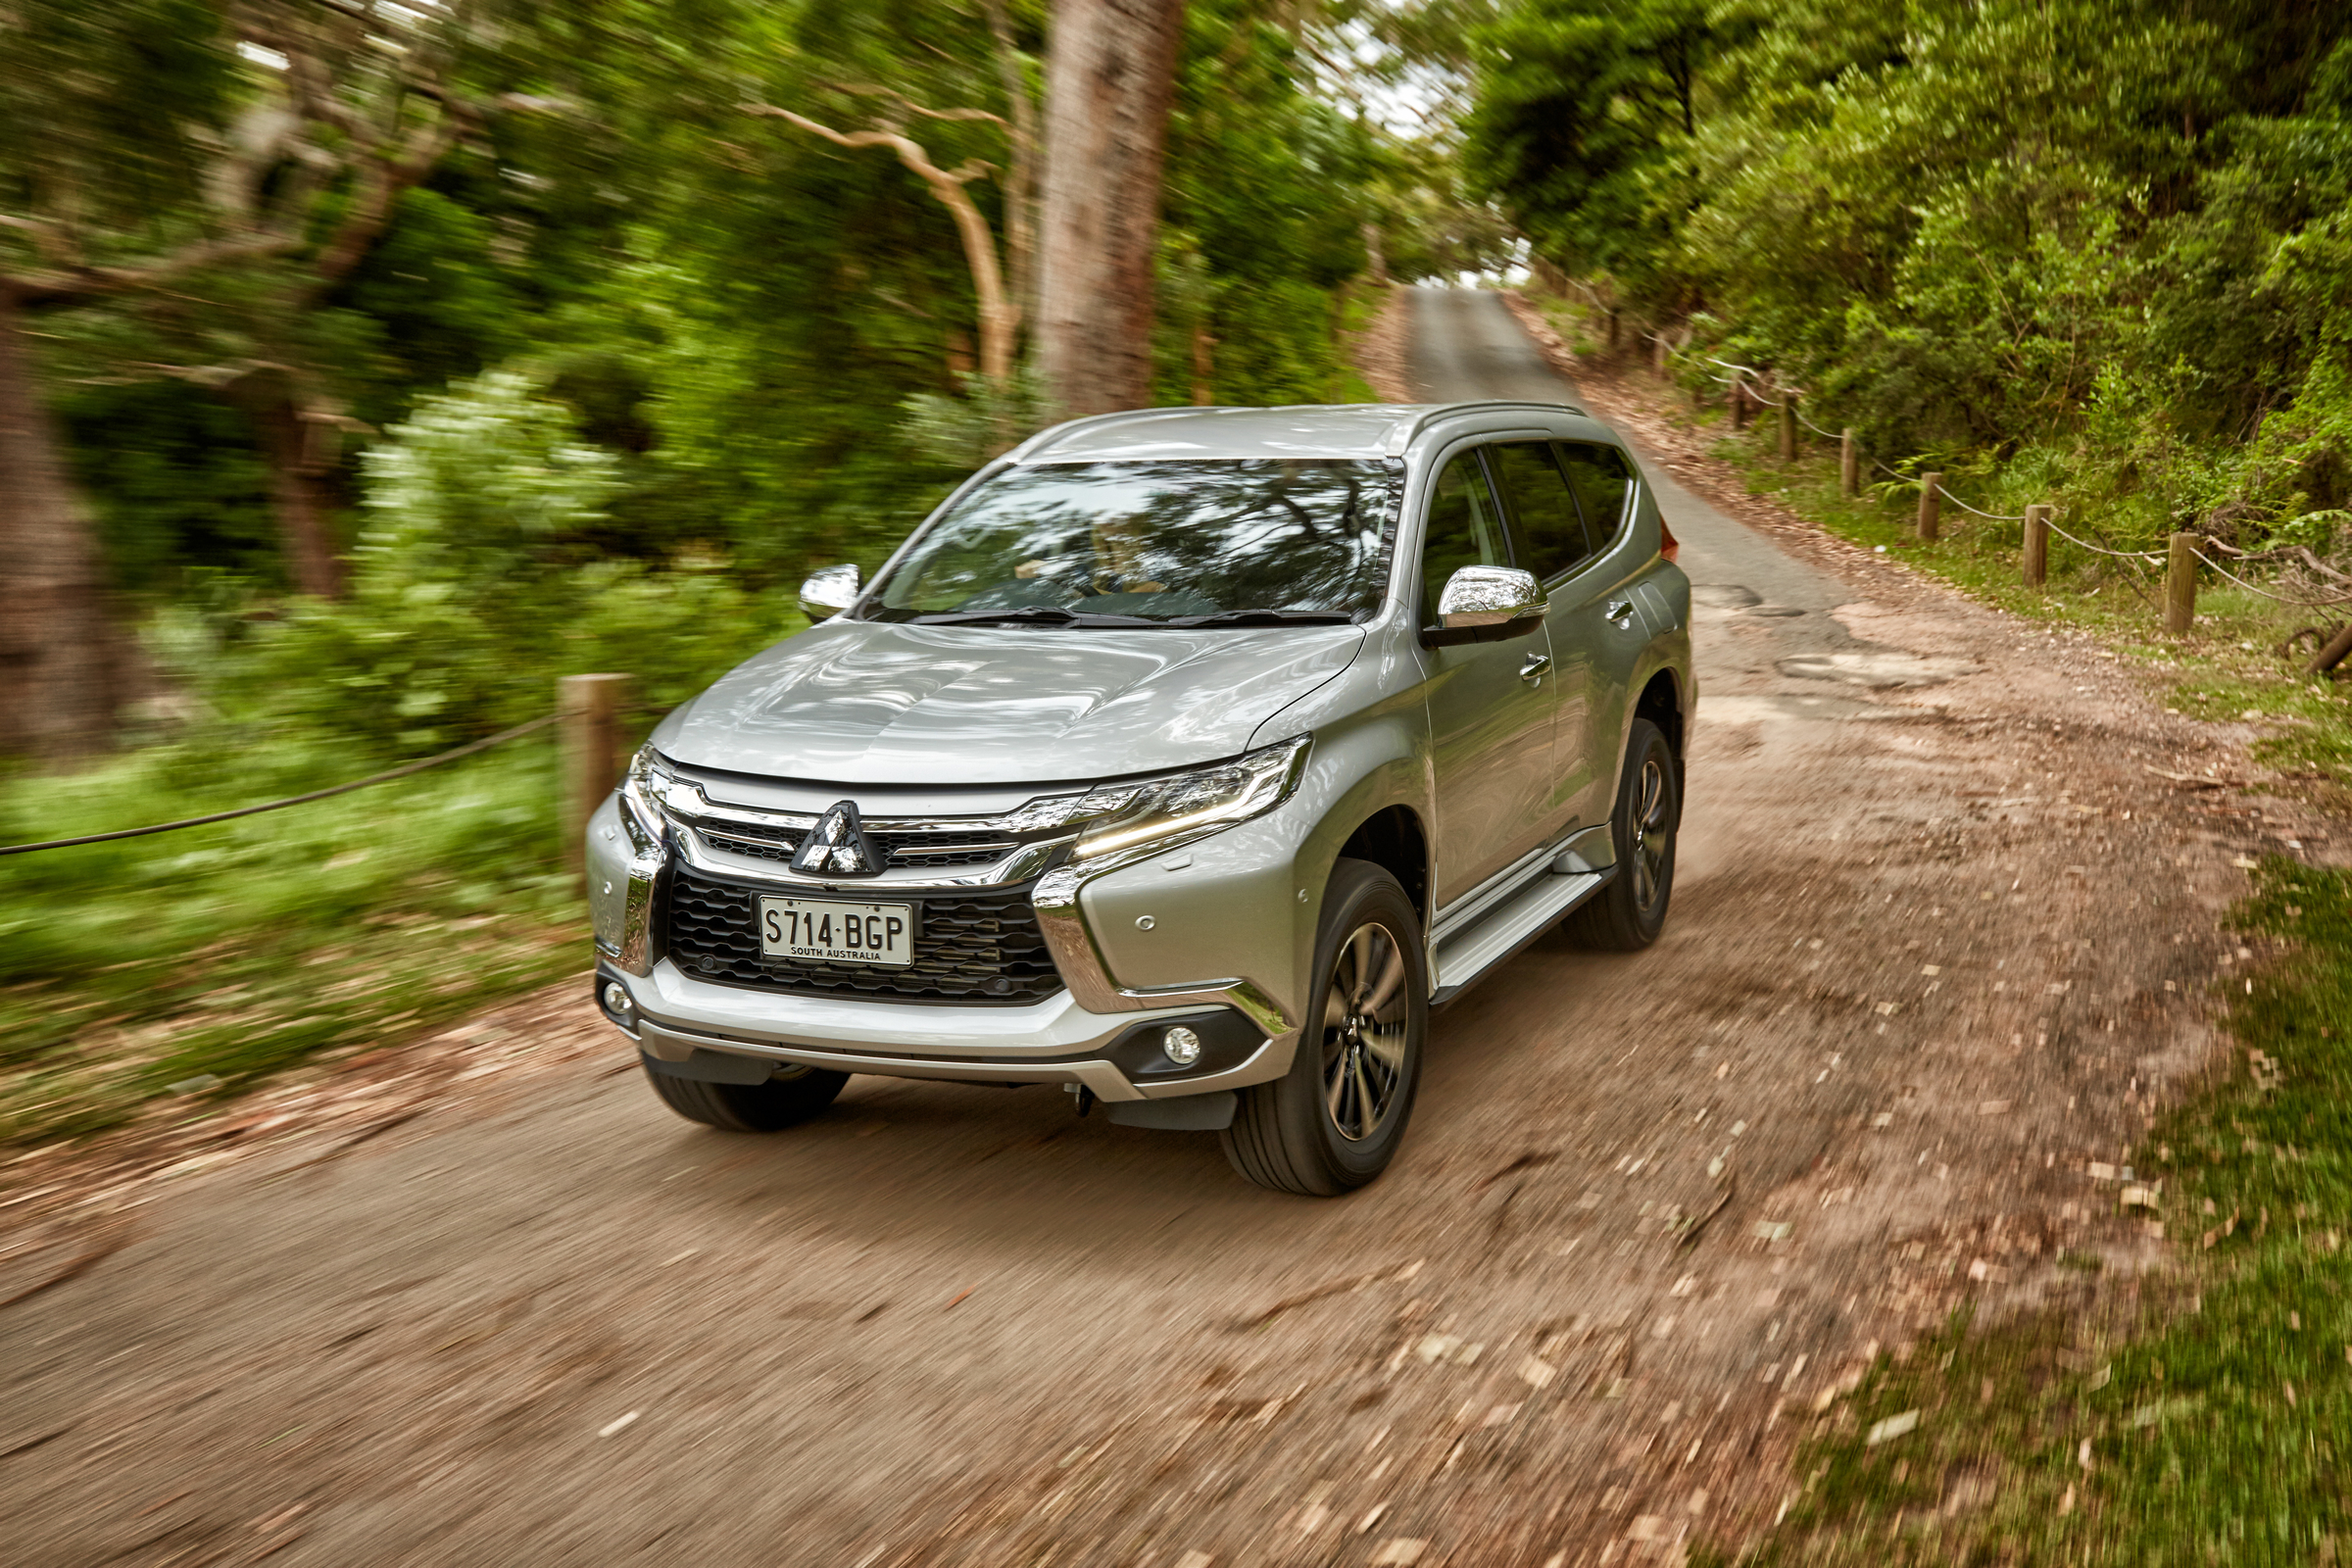 2016 Mitsubishi Pajero Sport (Photo 1 of 23)